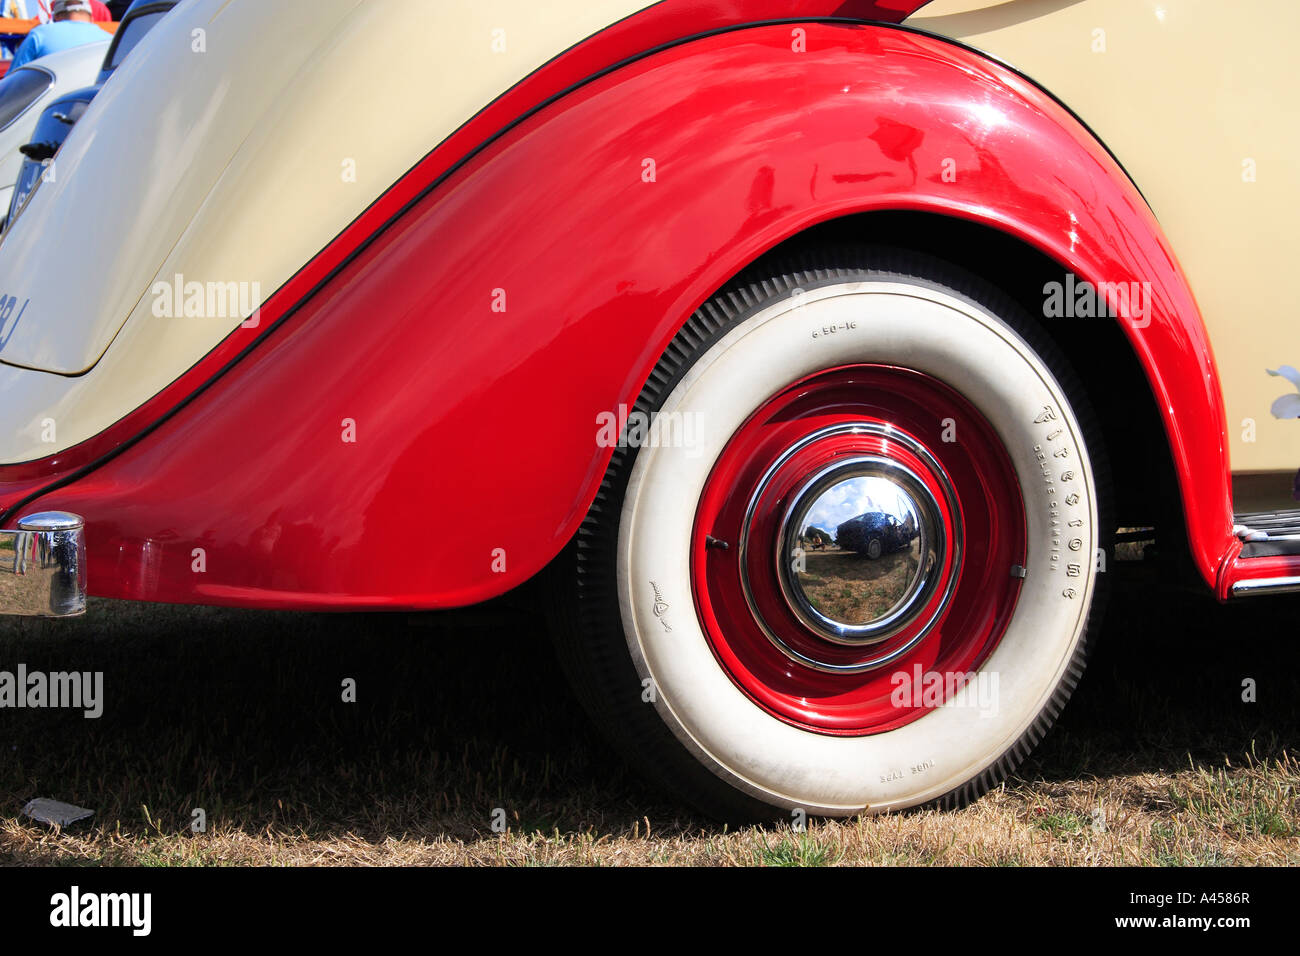 Firestone whitewall tyre wheel arch of vintage car - Stock Image